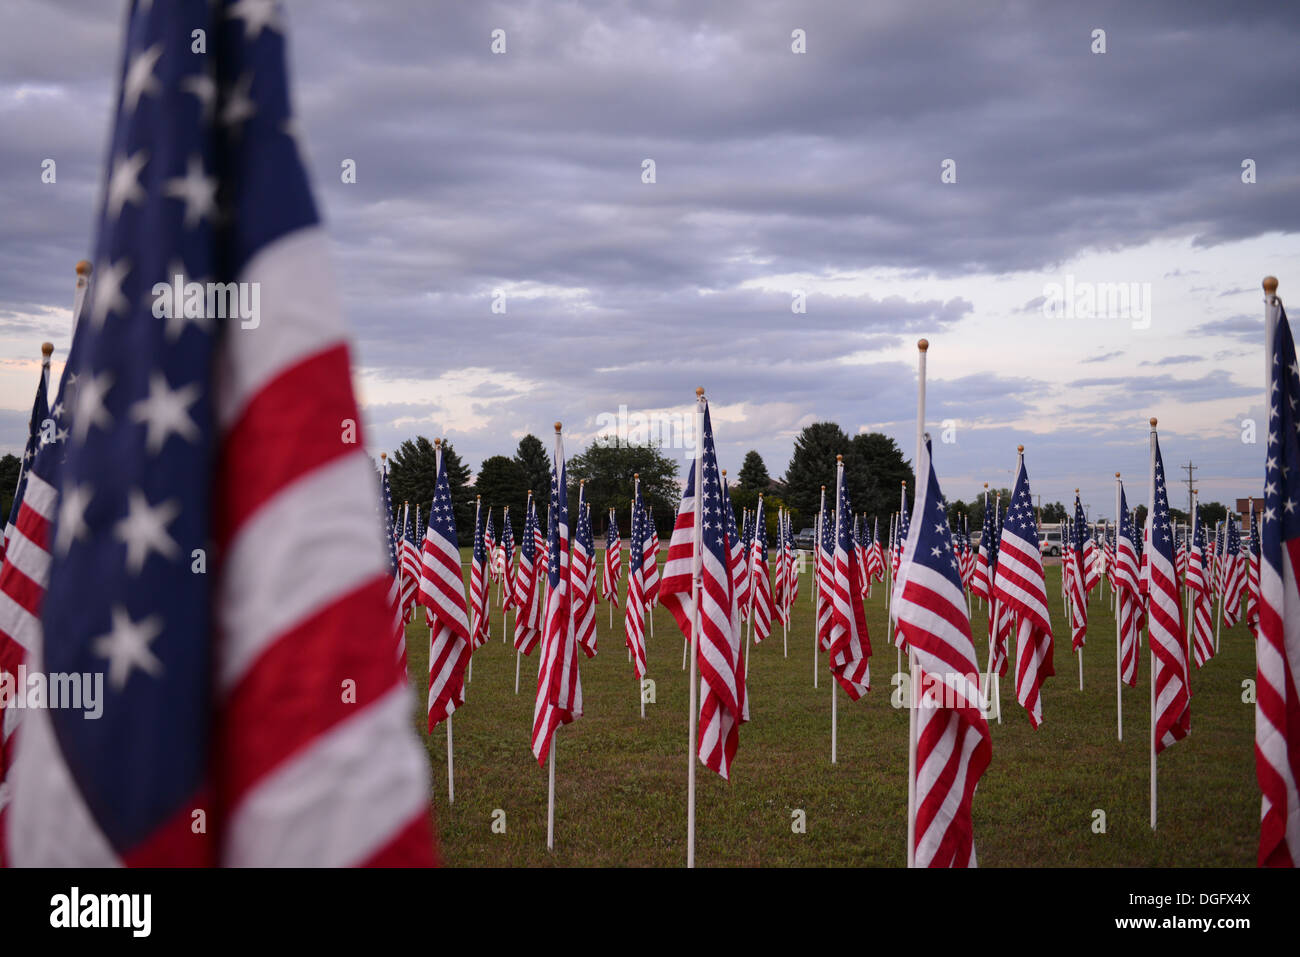 Many US Flags under a cloudy sky - Stock Image